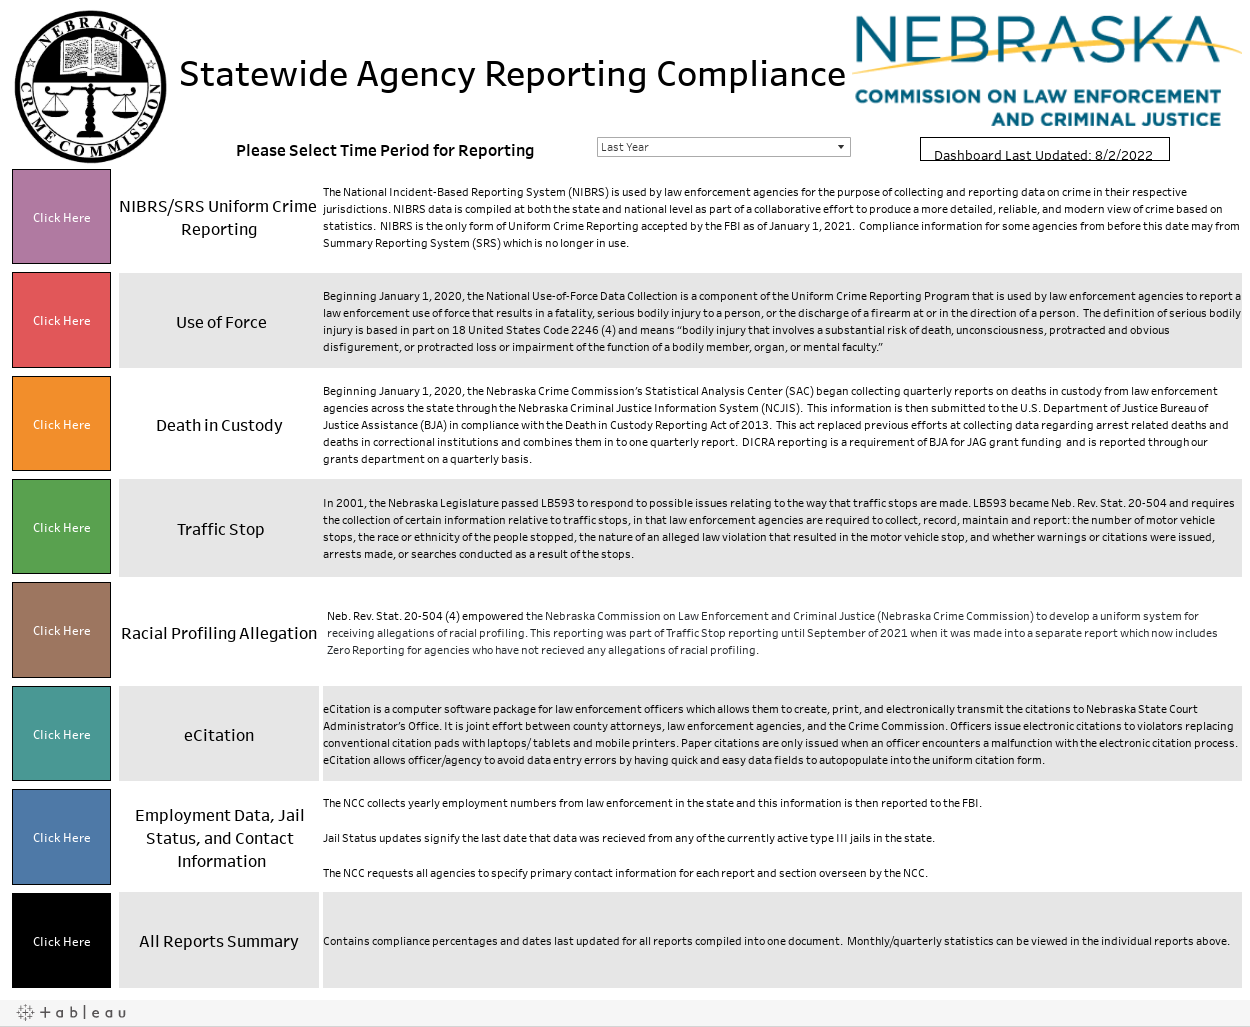 Compliance Reporting